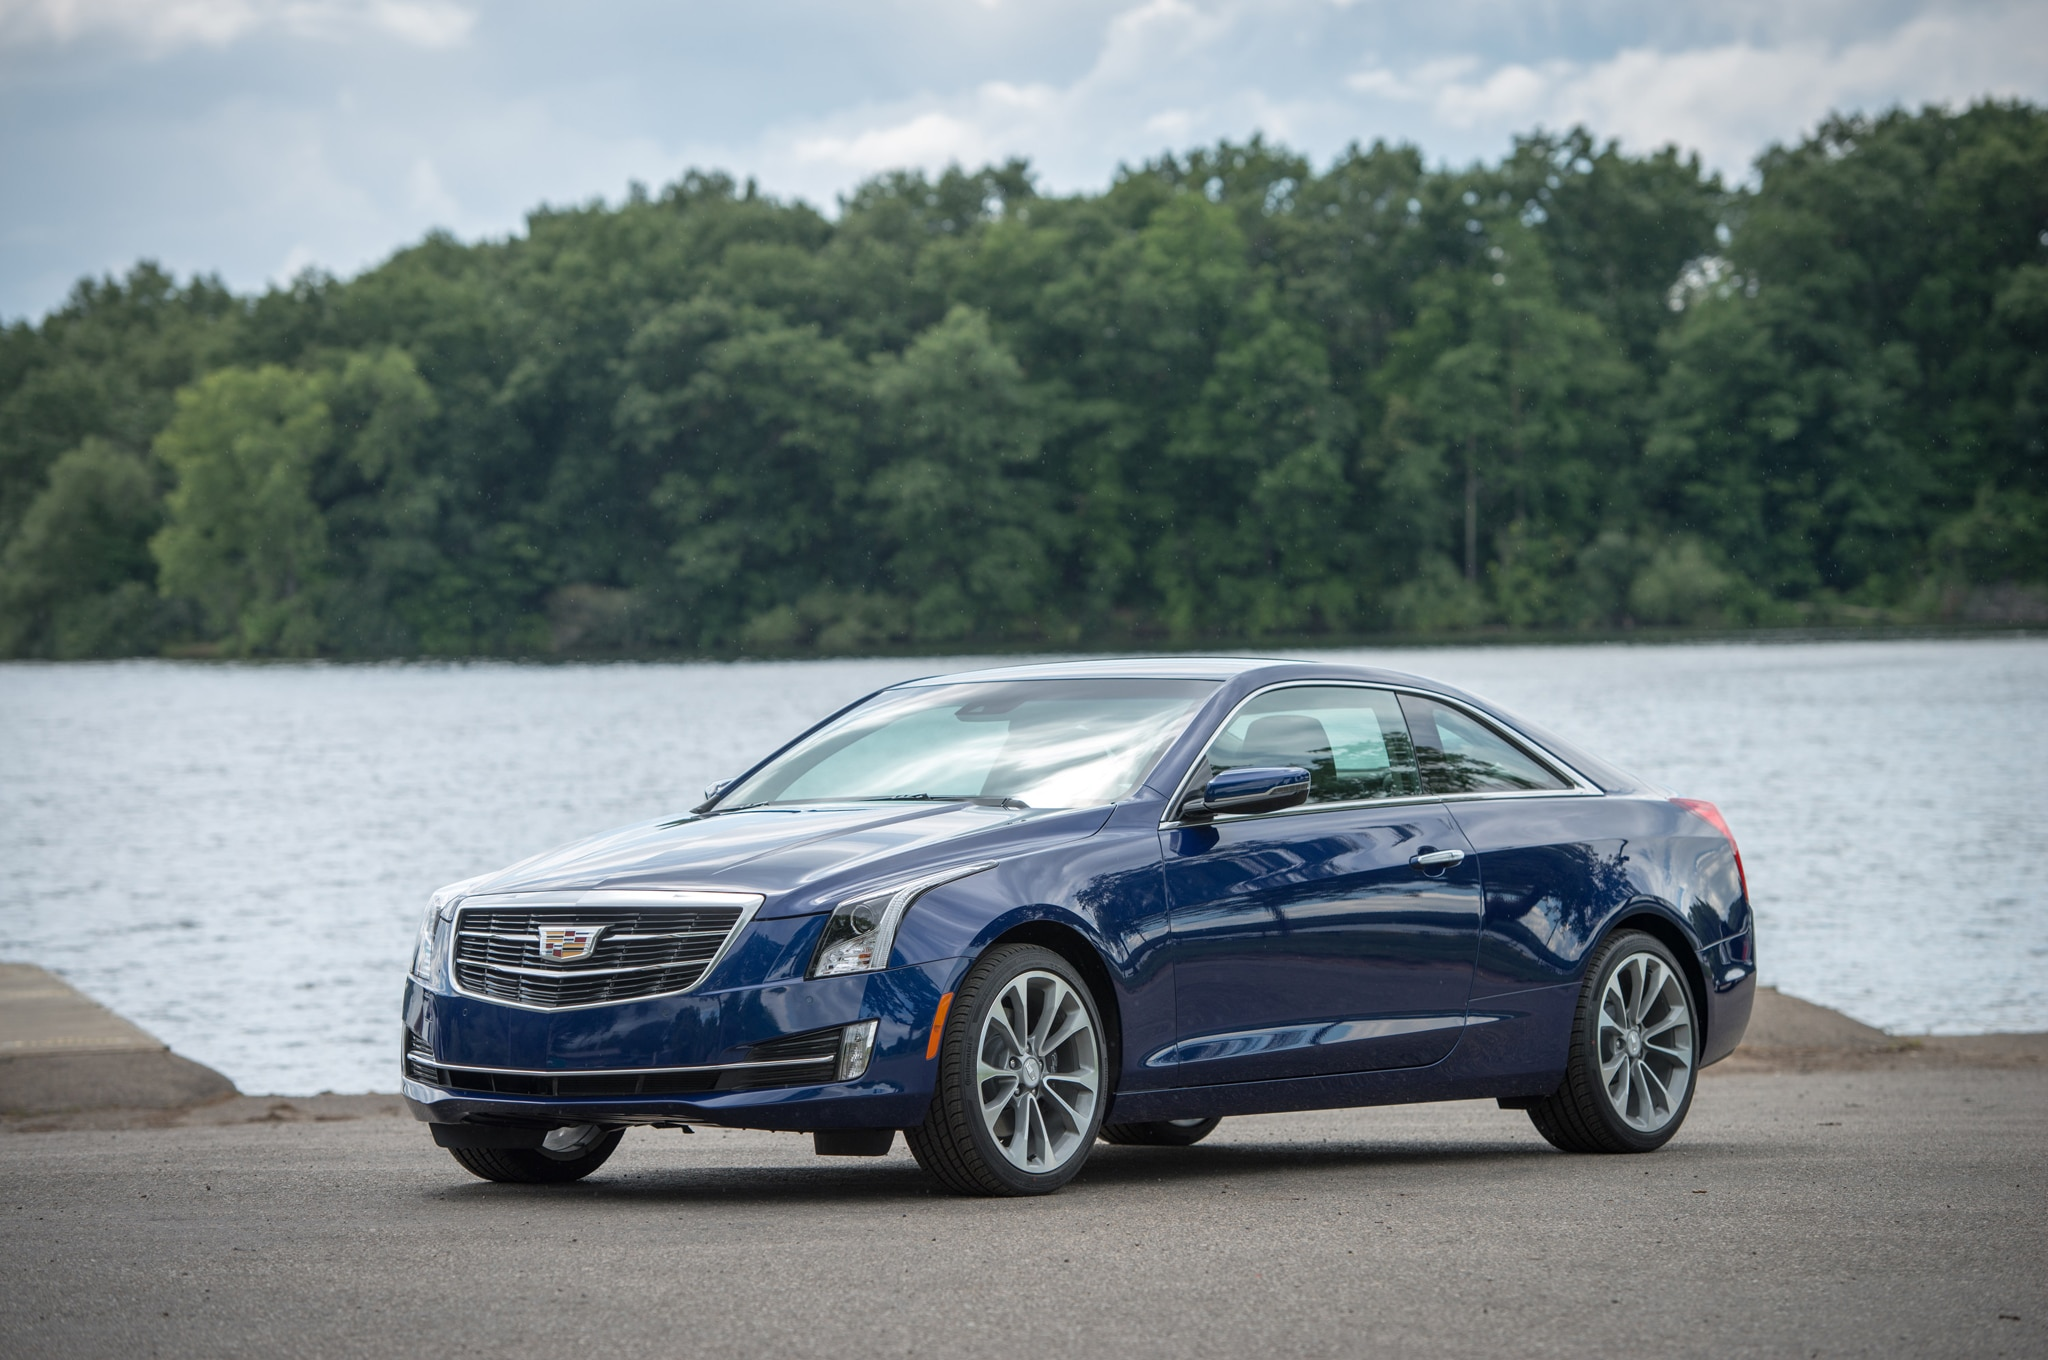 2016 cadillac ats coupe 3 6l premium review. Black Bedroom Furniture Sets. Home Design Ideas